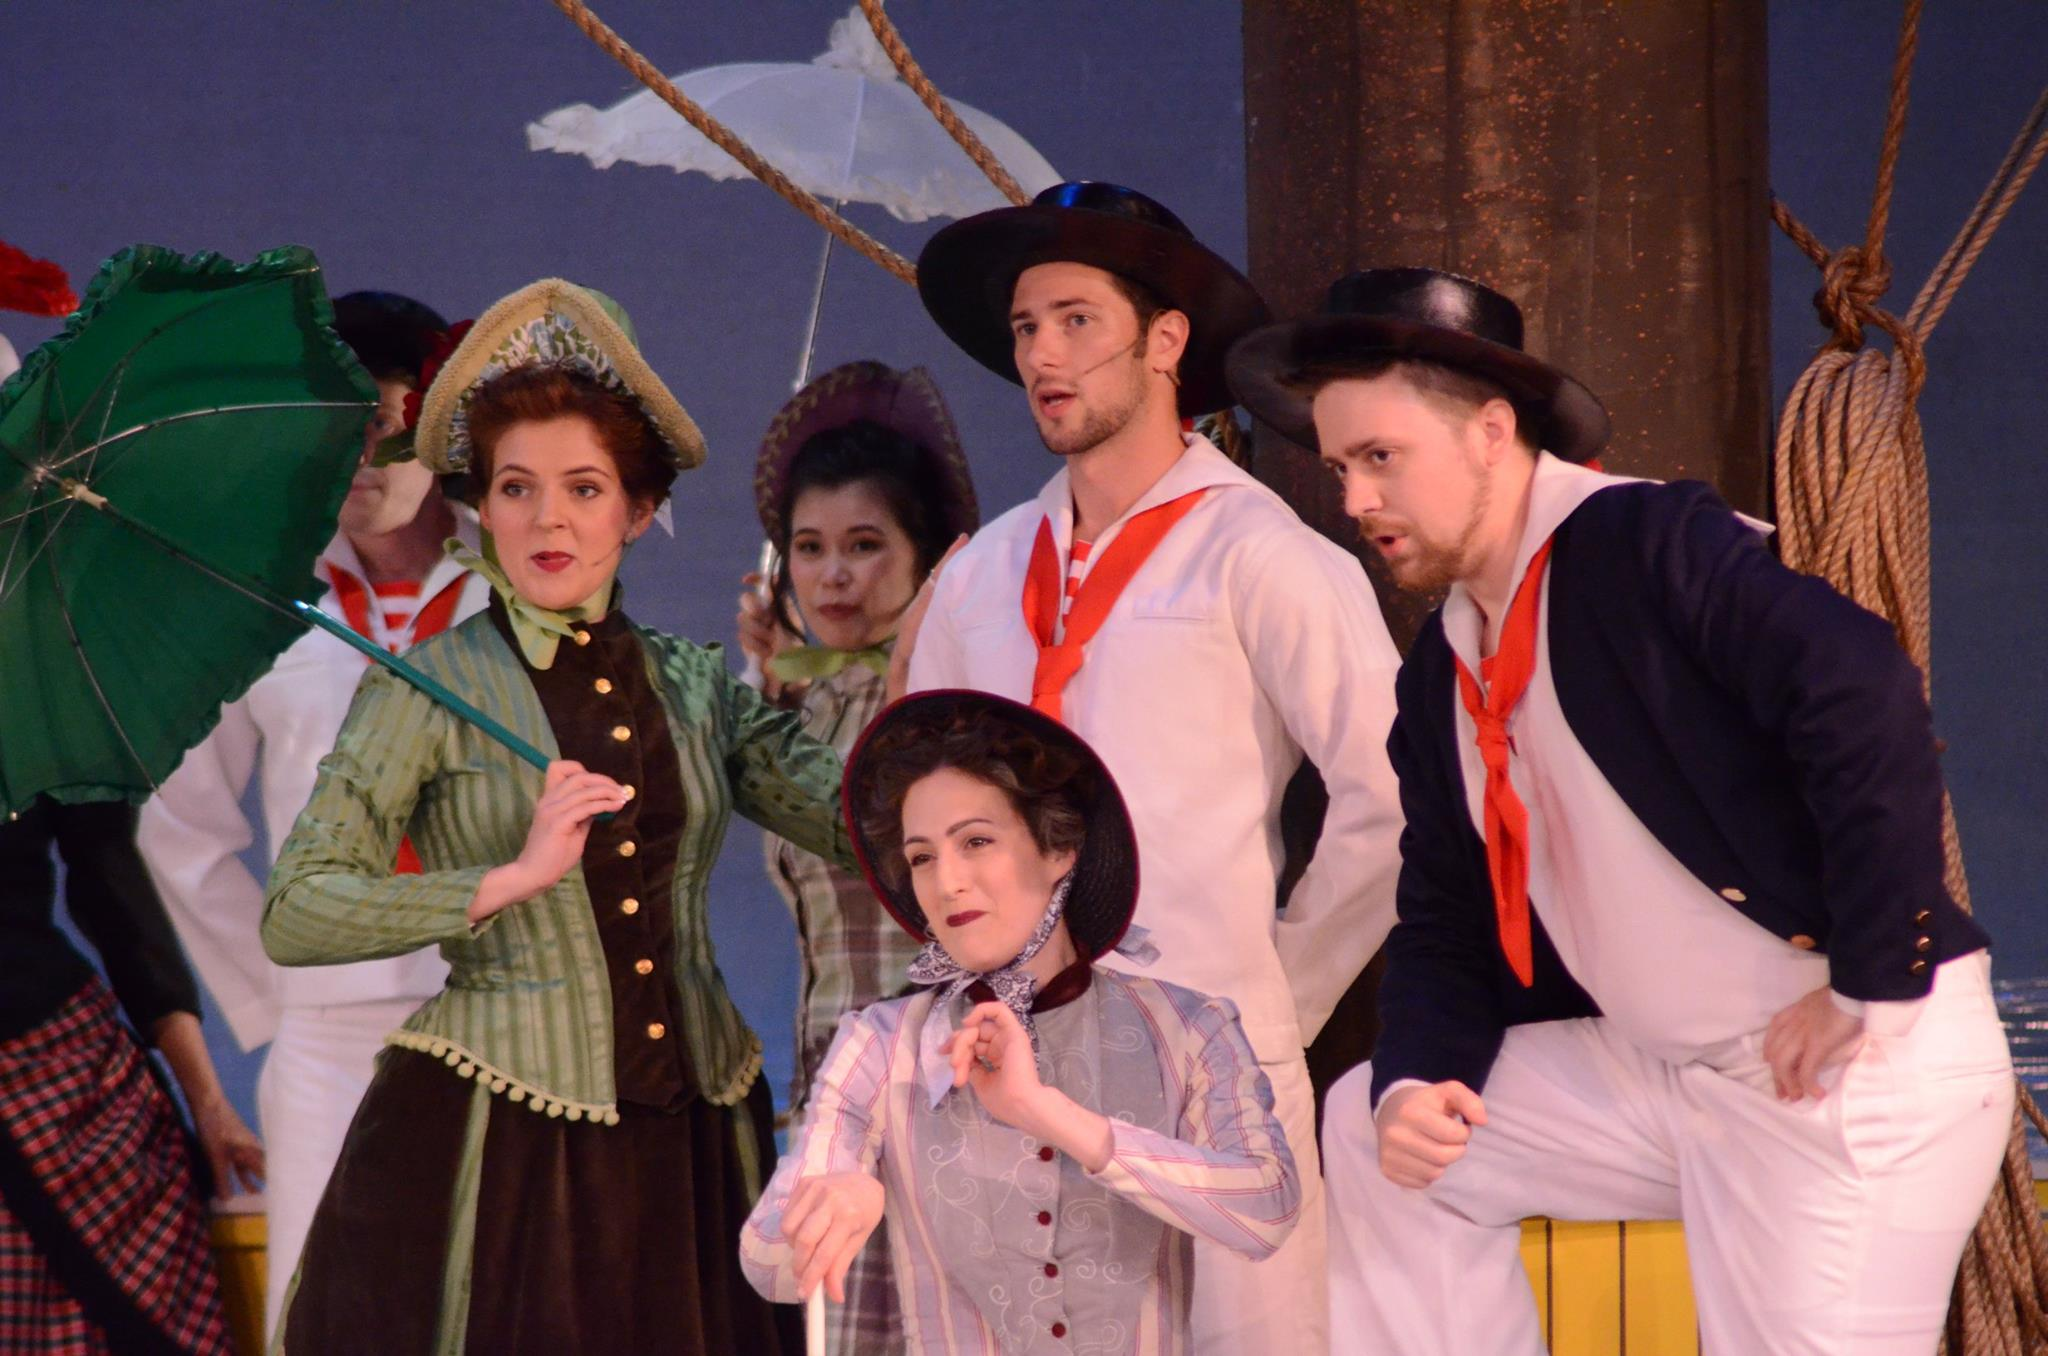 HMS Pinafore Boatswain Mounds View Community Theatre Joe Allen Brandyn Tapio Jaclyn Mack GSVLOC